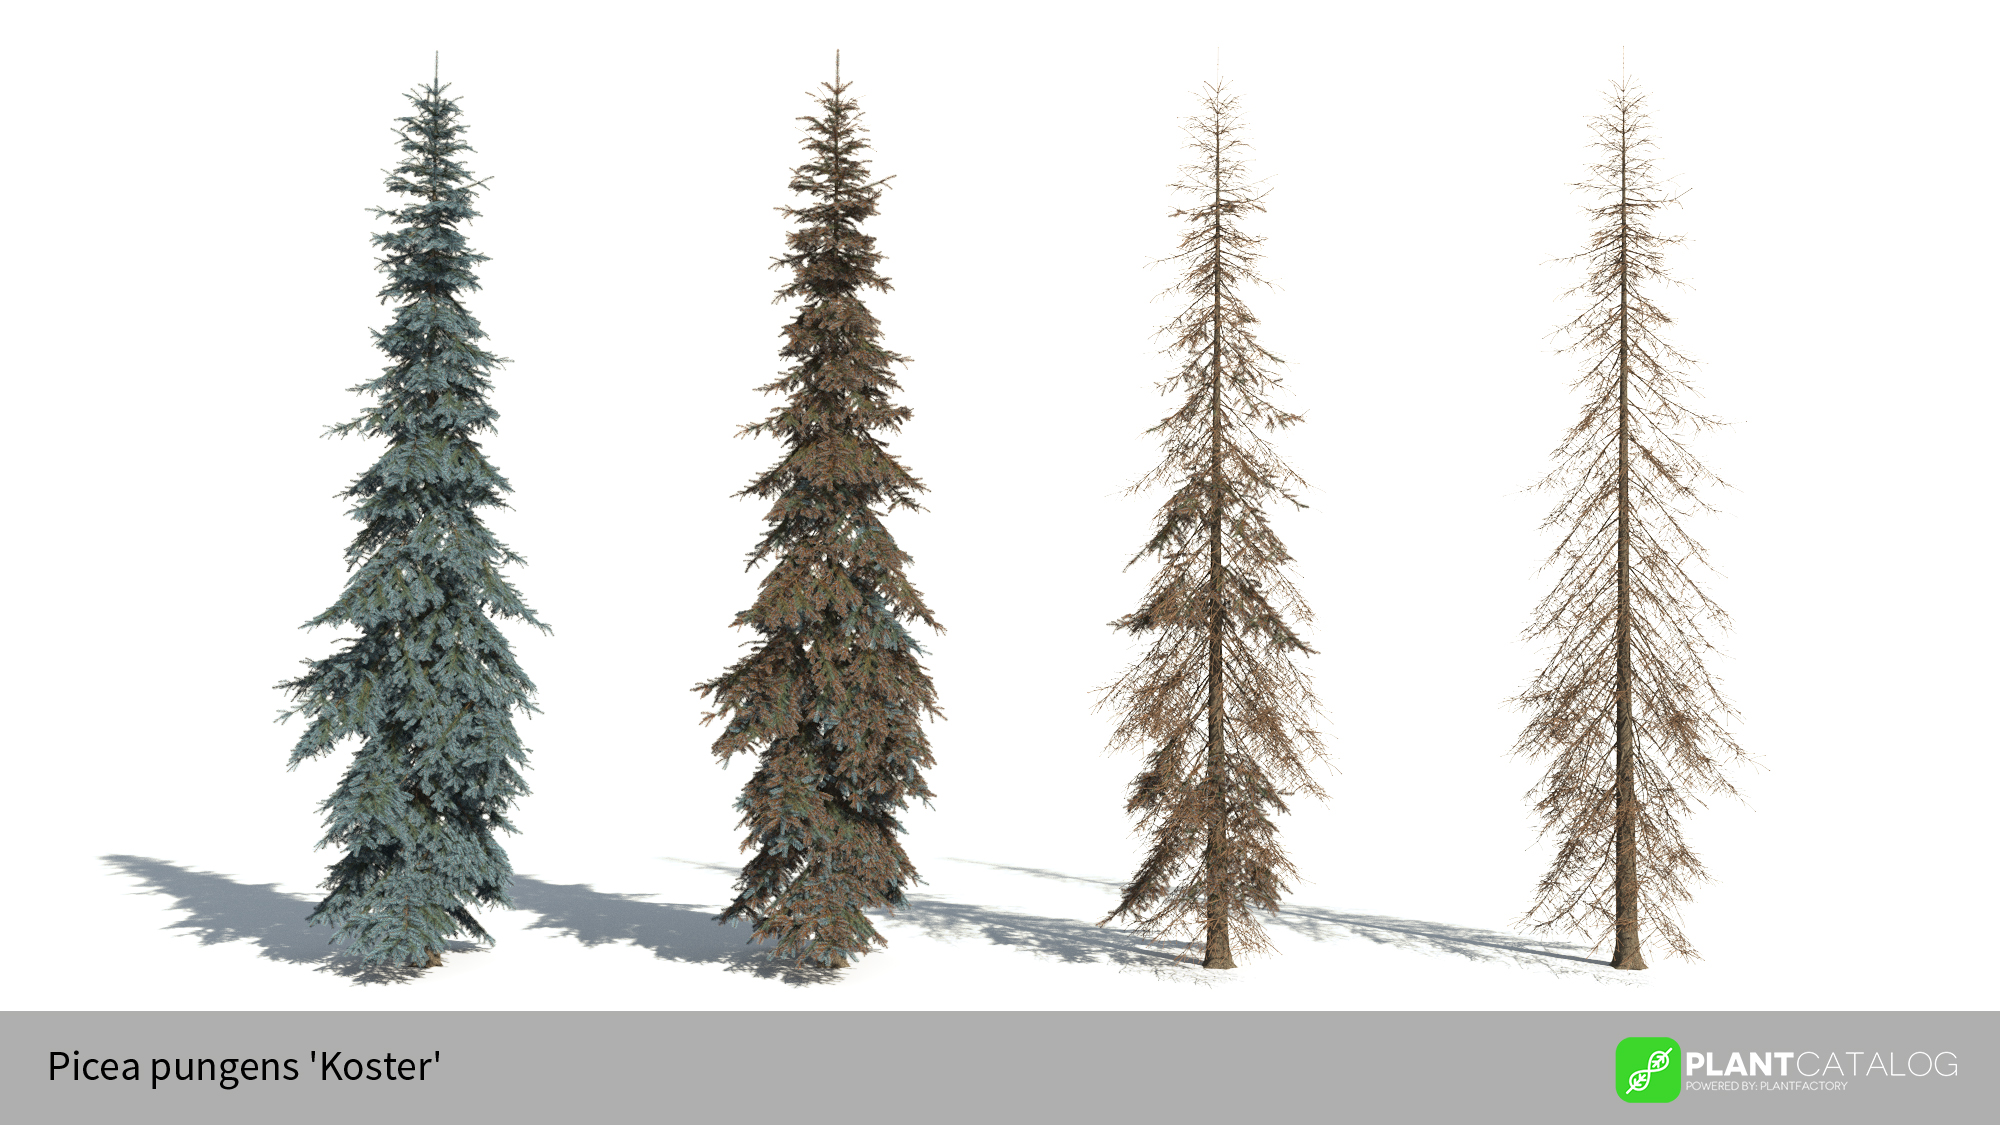 3D model of the Colorado Blue spruce 'Koster' - Picea pungens 'Koster' - from the PlantCatalog, rendered in VUE